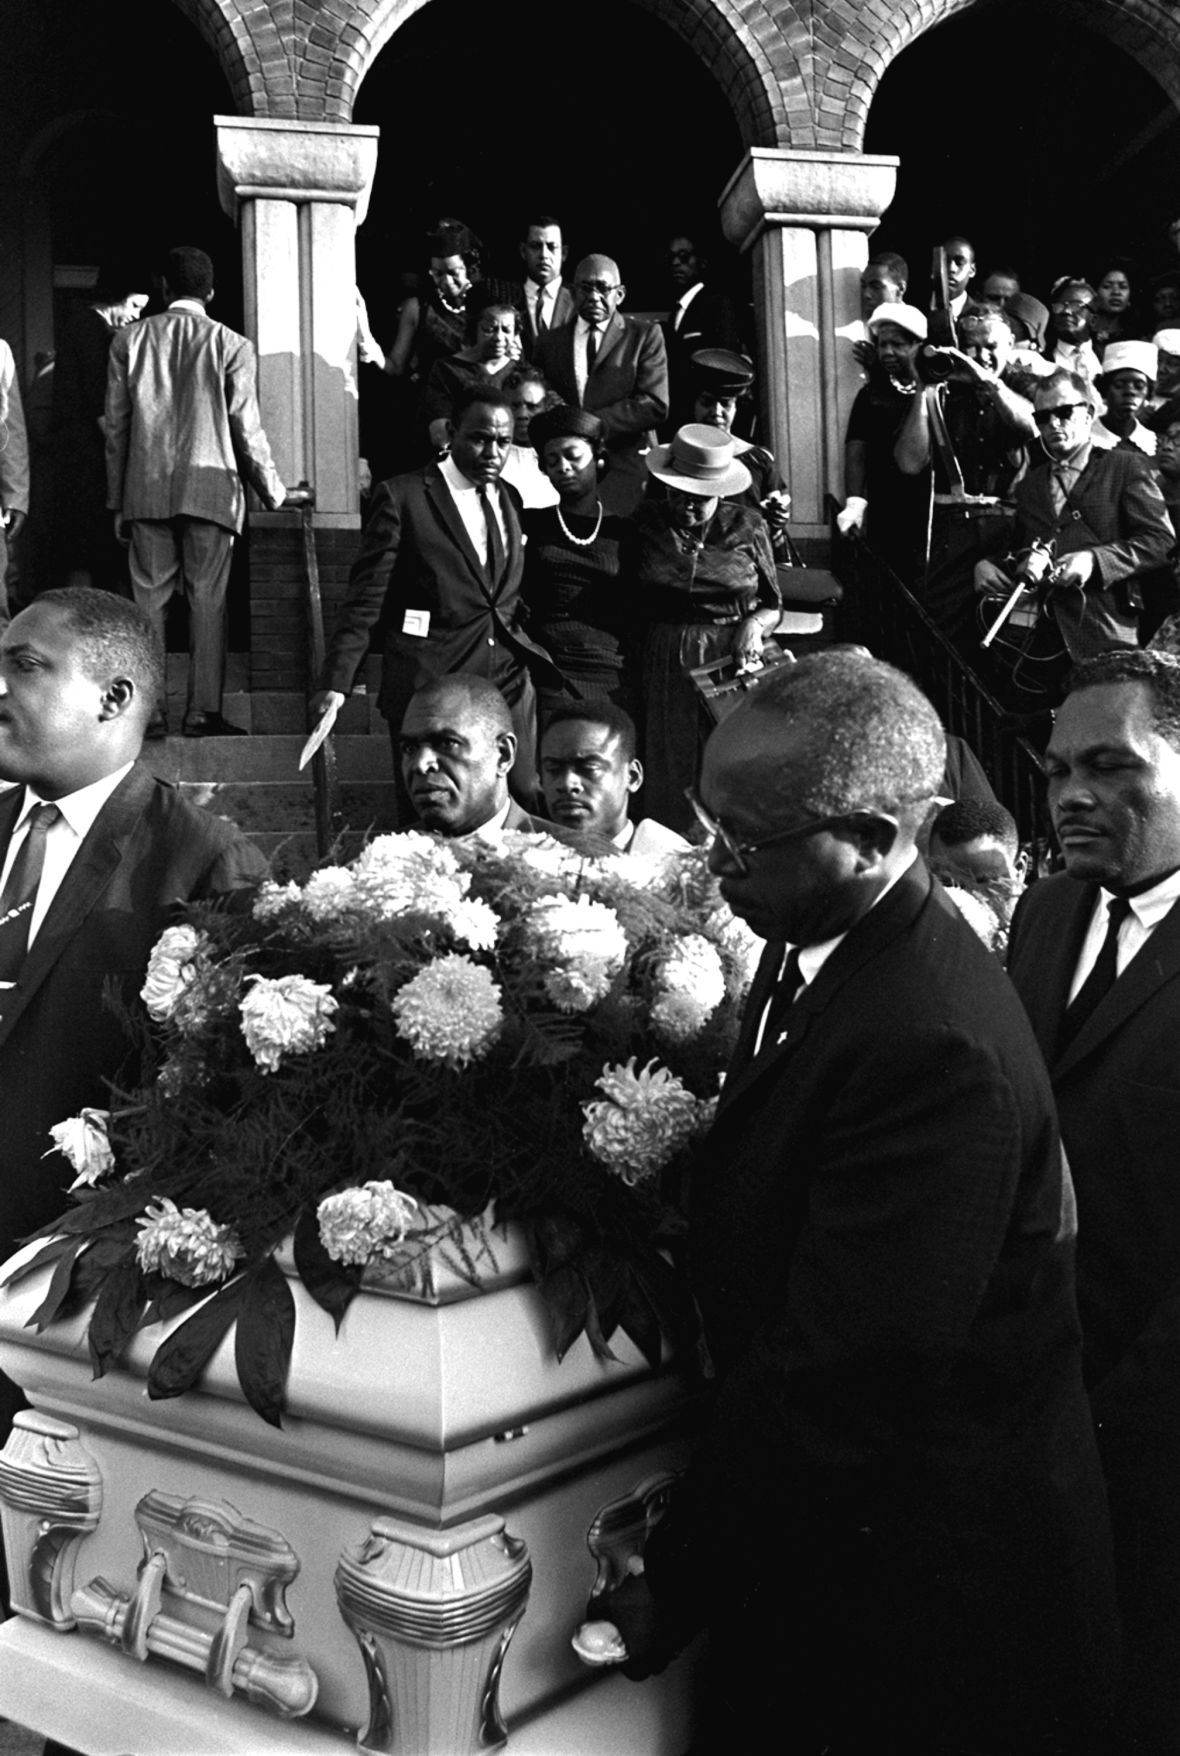 CHURCH BOMBING FUNERAL